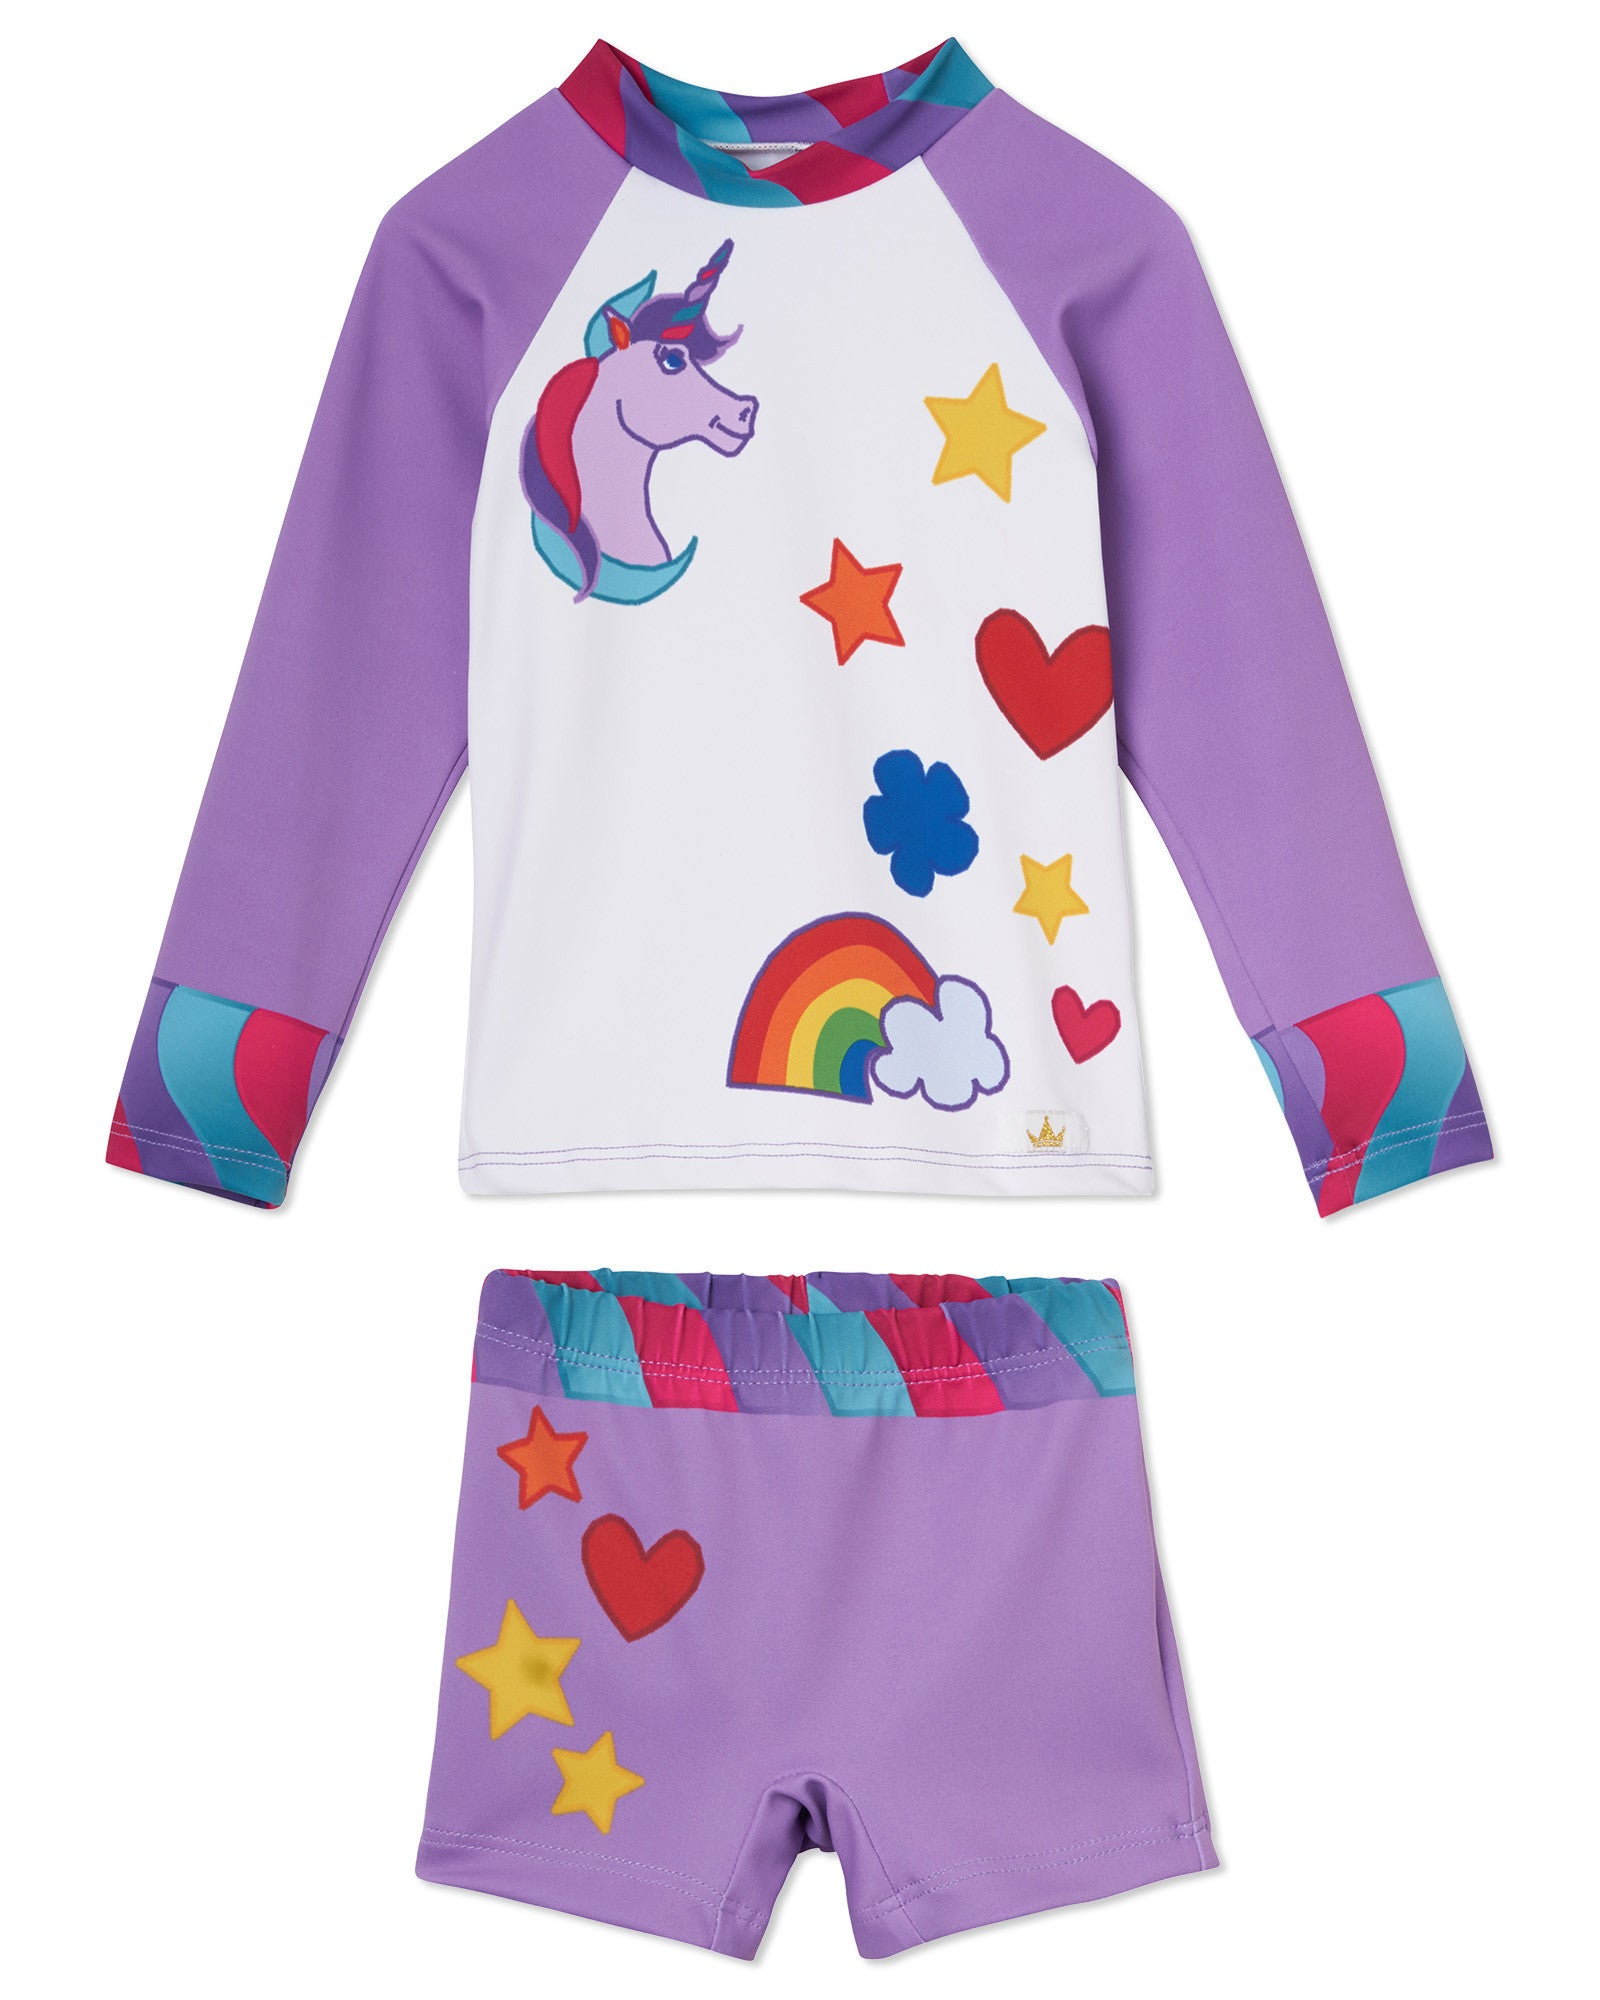 f7bdc76a34f08 Best Toddler UV UPF 50+ Swimwear & Unicorn Girl Costume Design ...